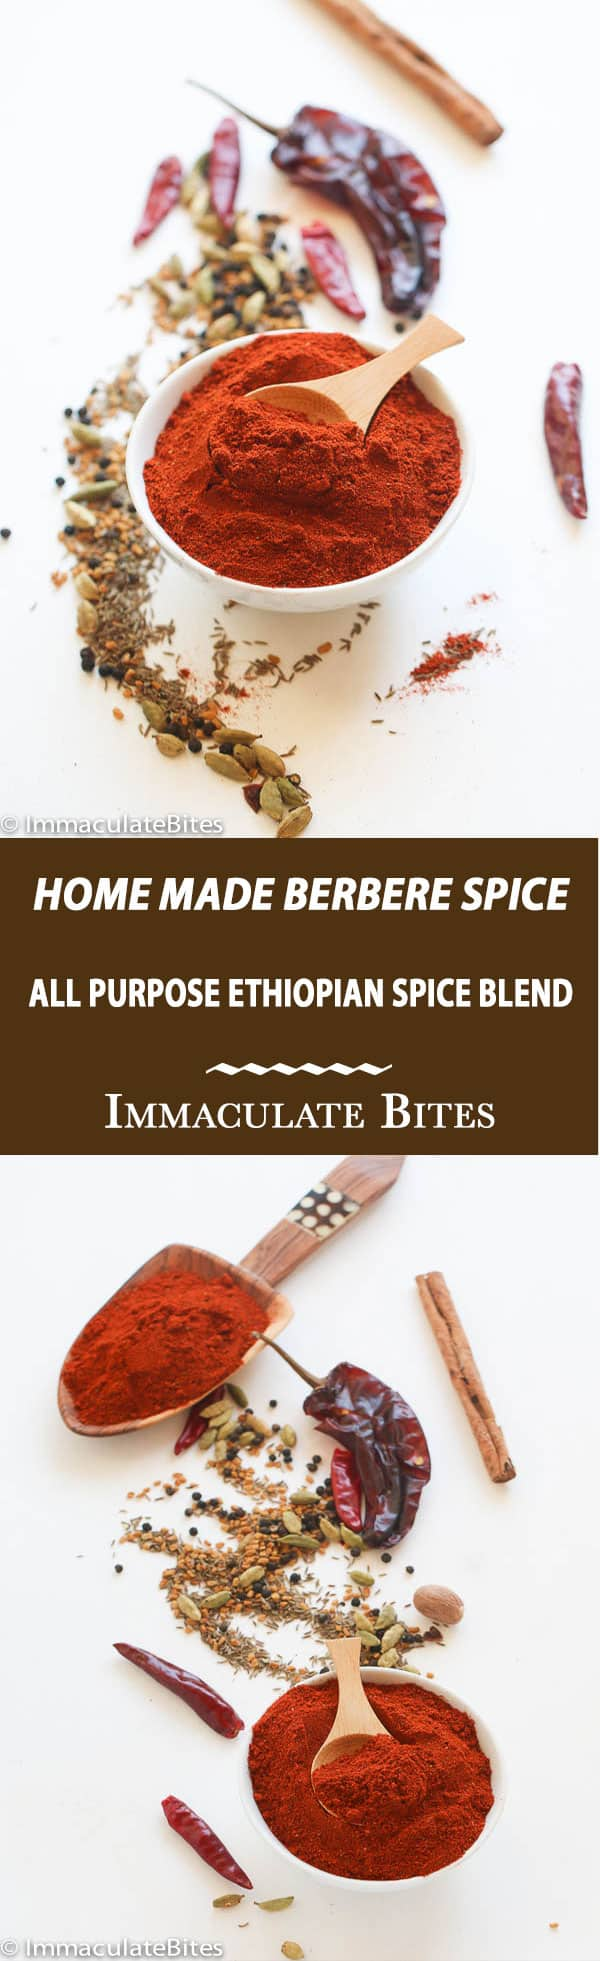 Berbere Spice -Homemade Ethiopian Seasoning Mix - The secret spice blend to making Ethiopian Meals